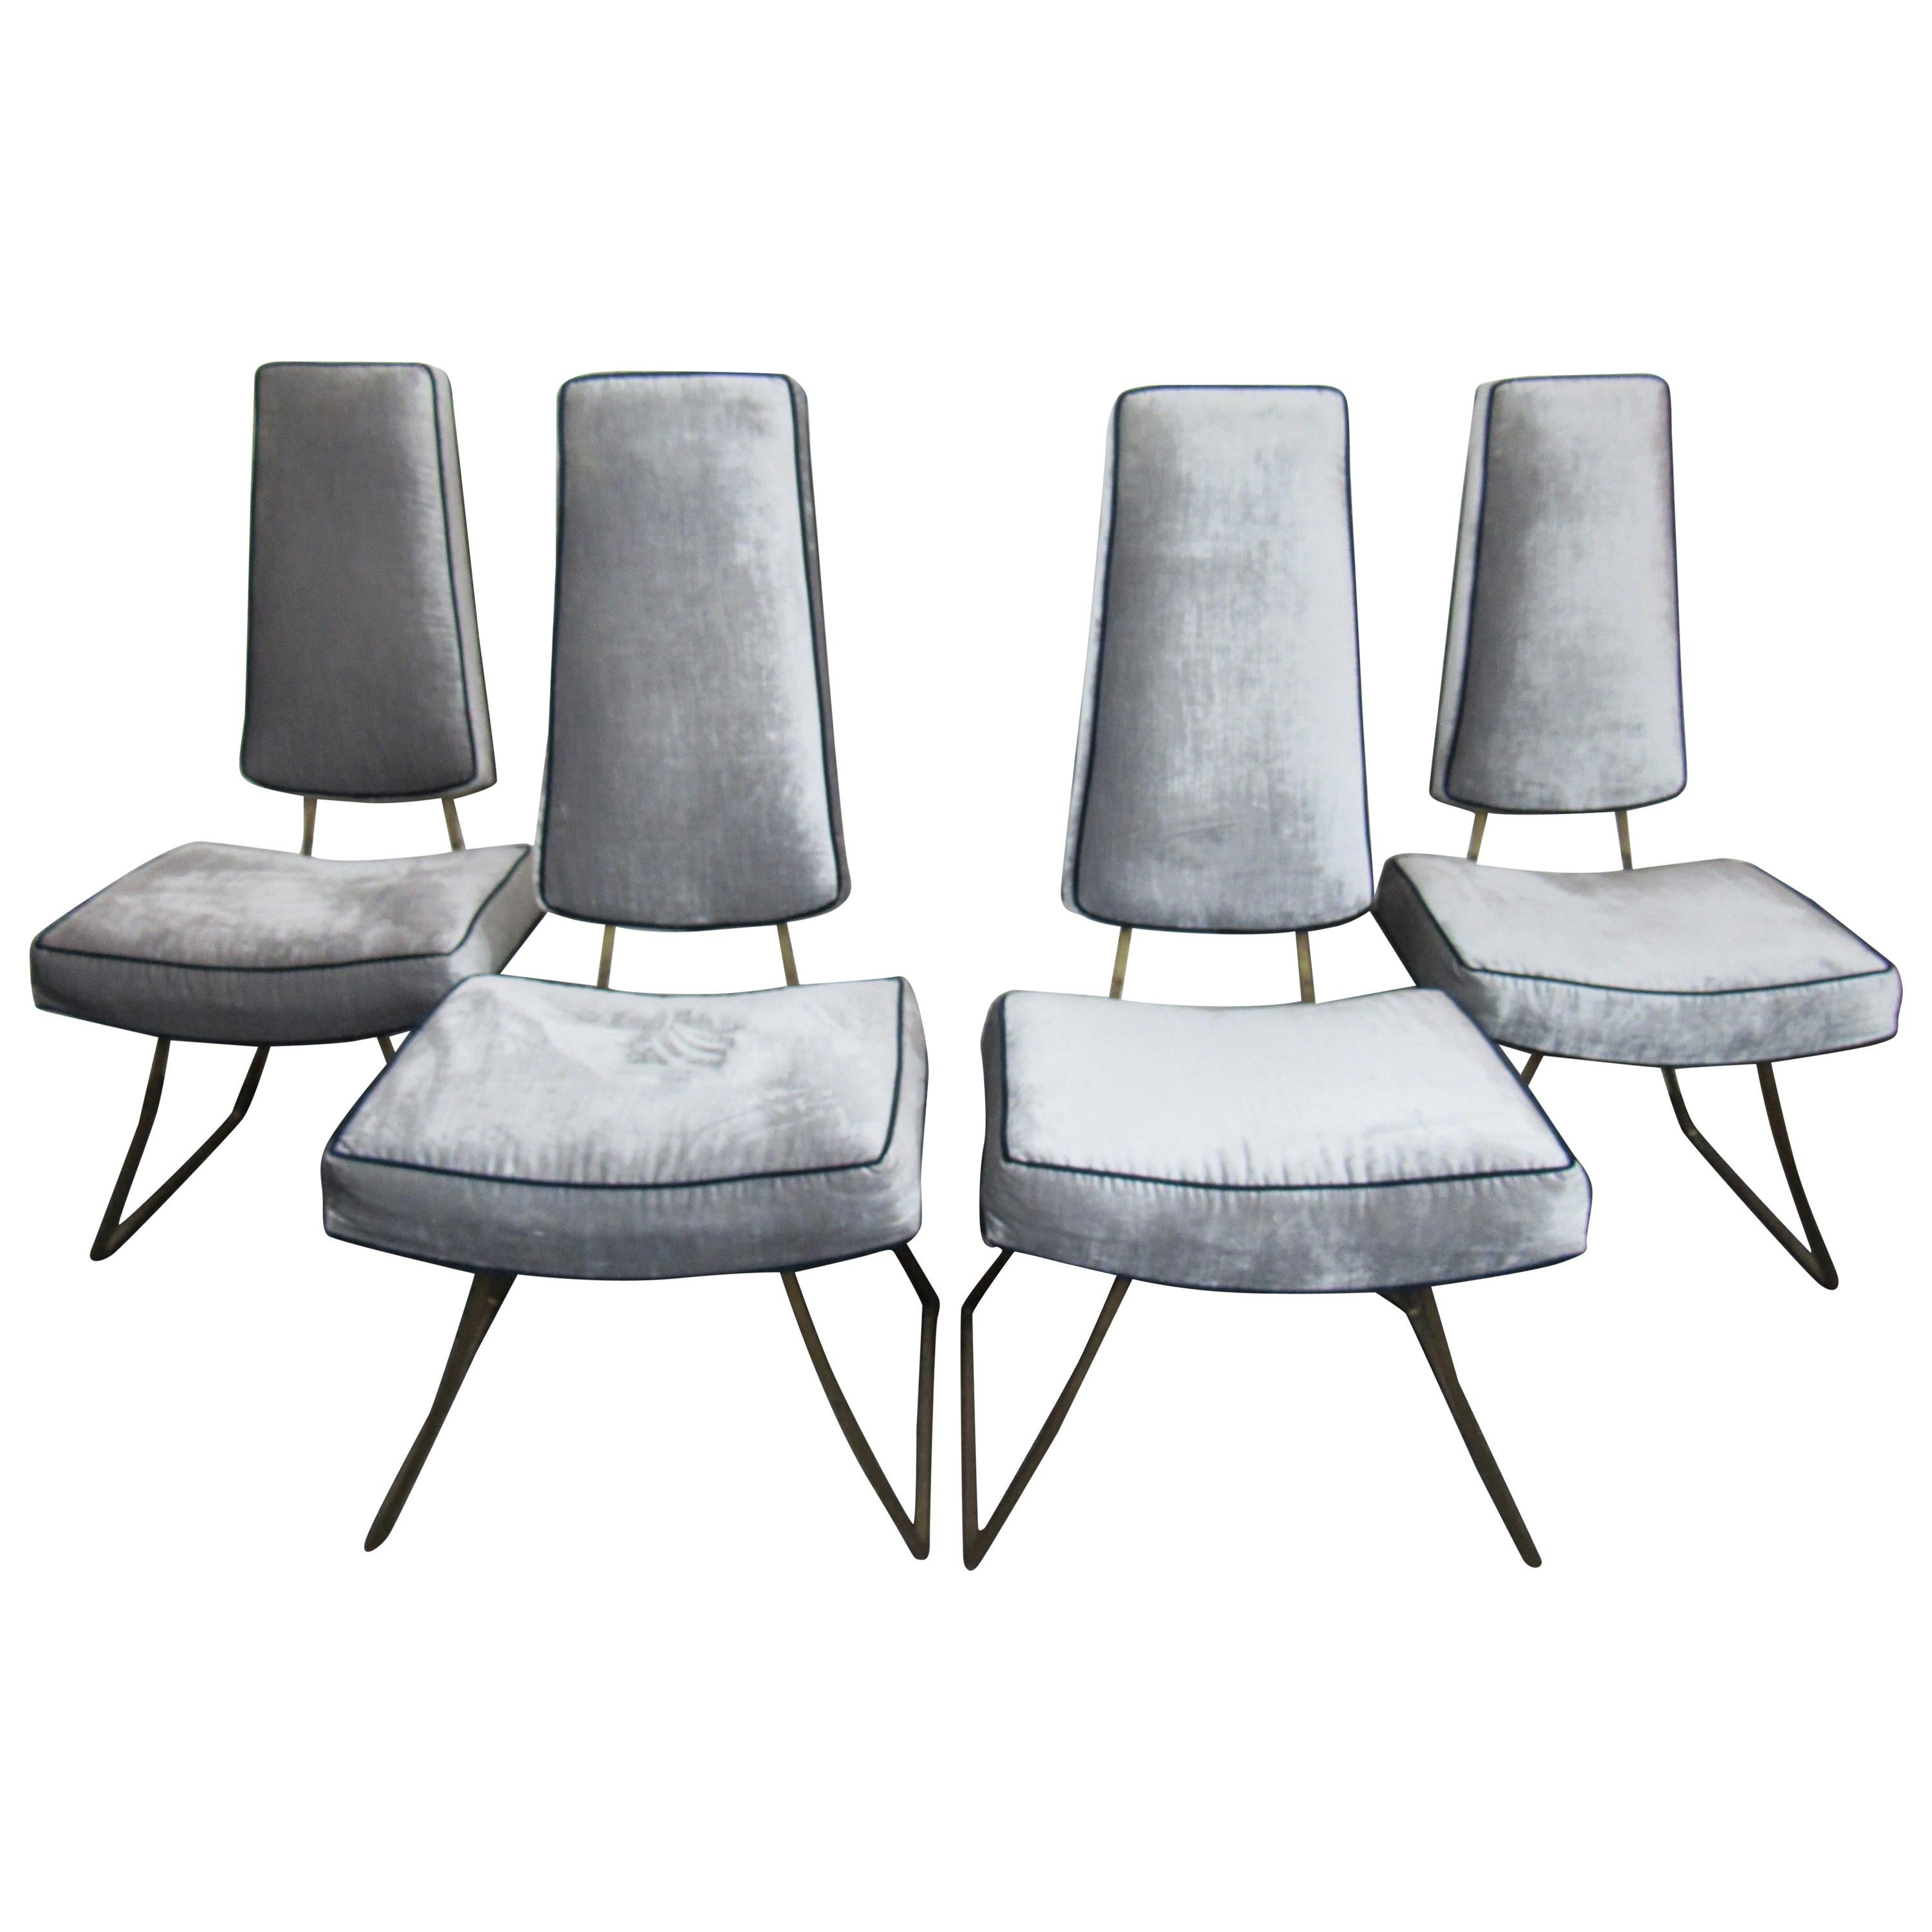 Set of Four Modern Chairs